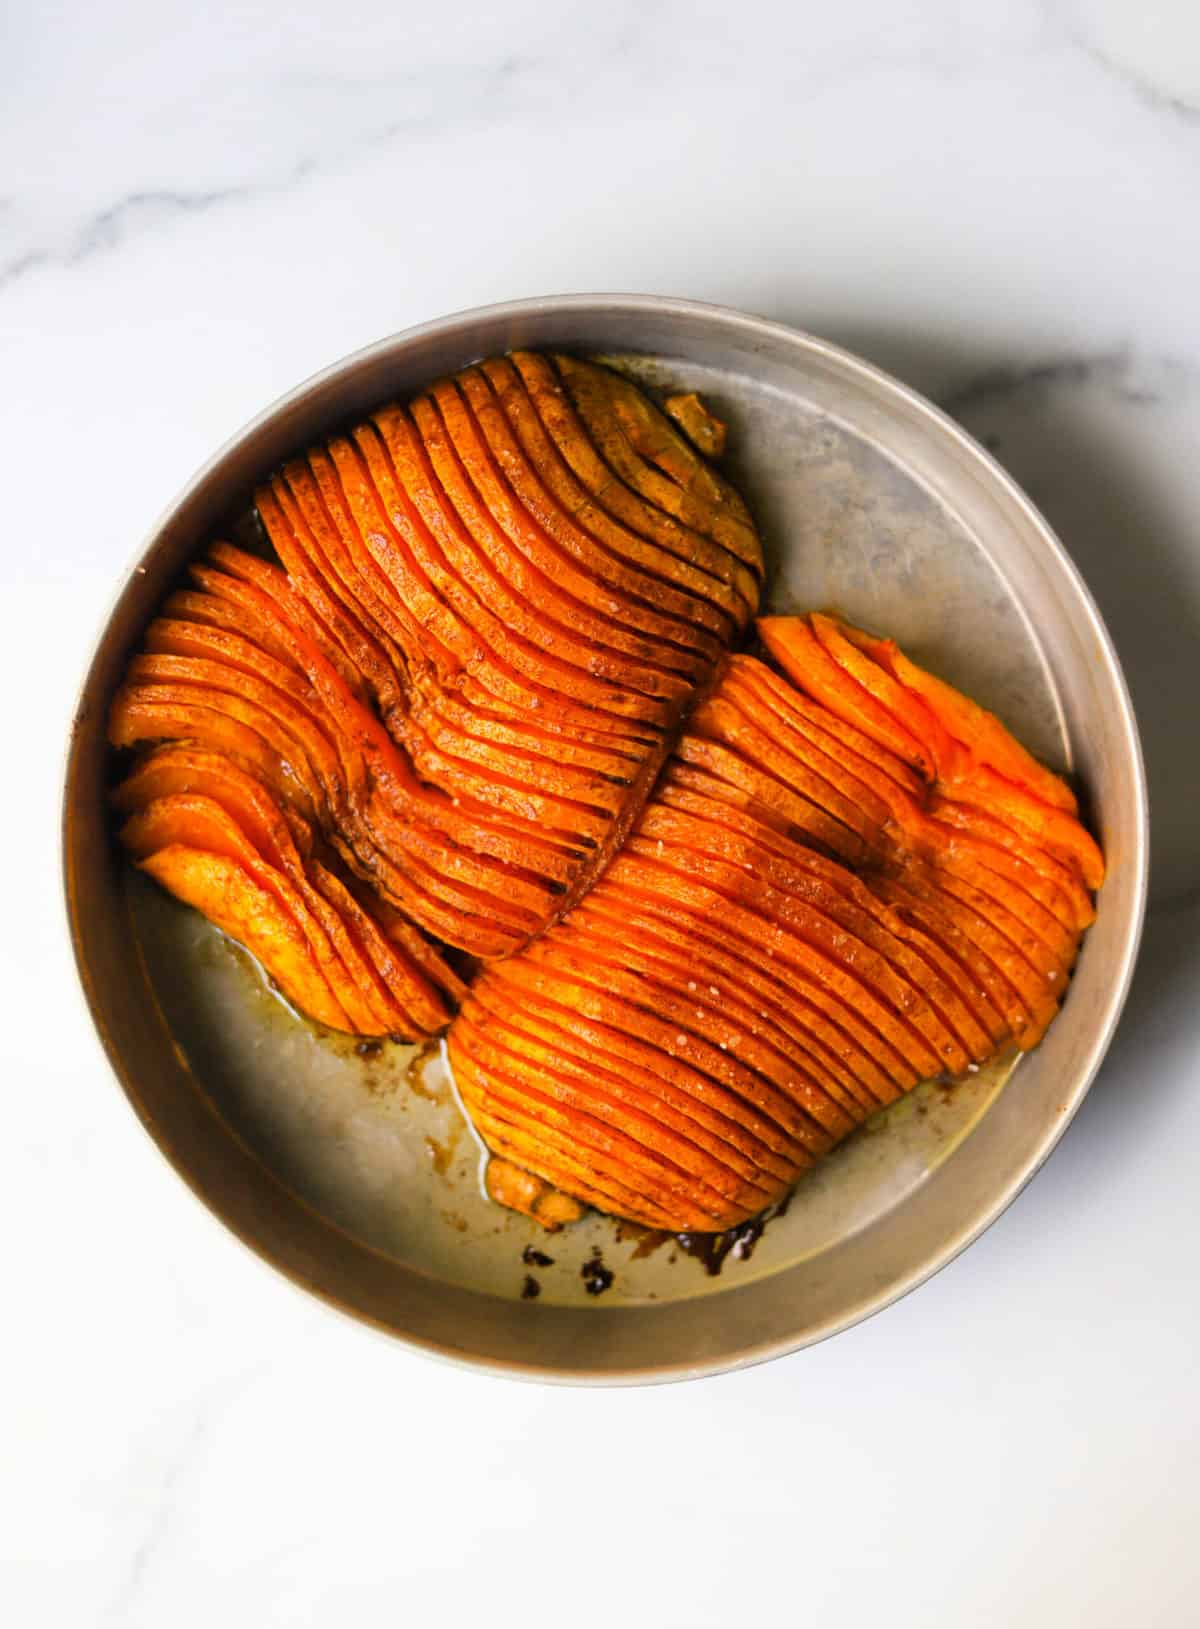 An overhead shot of a tray with hasselback butternut squash.